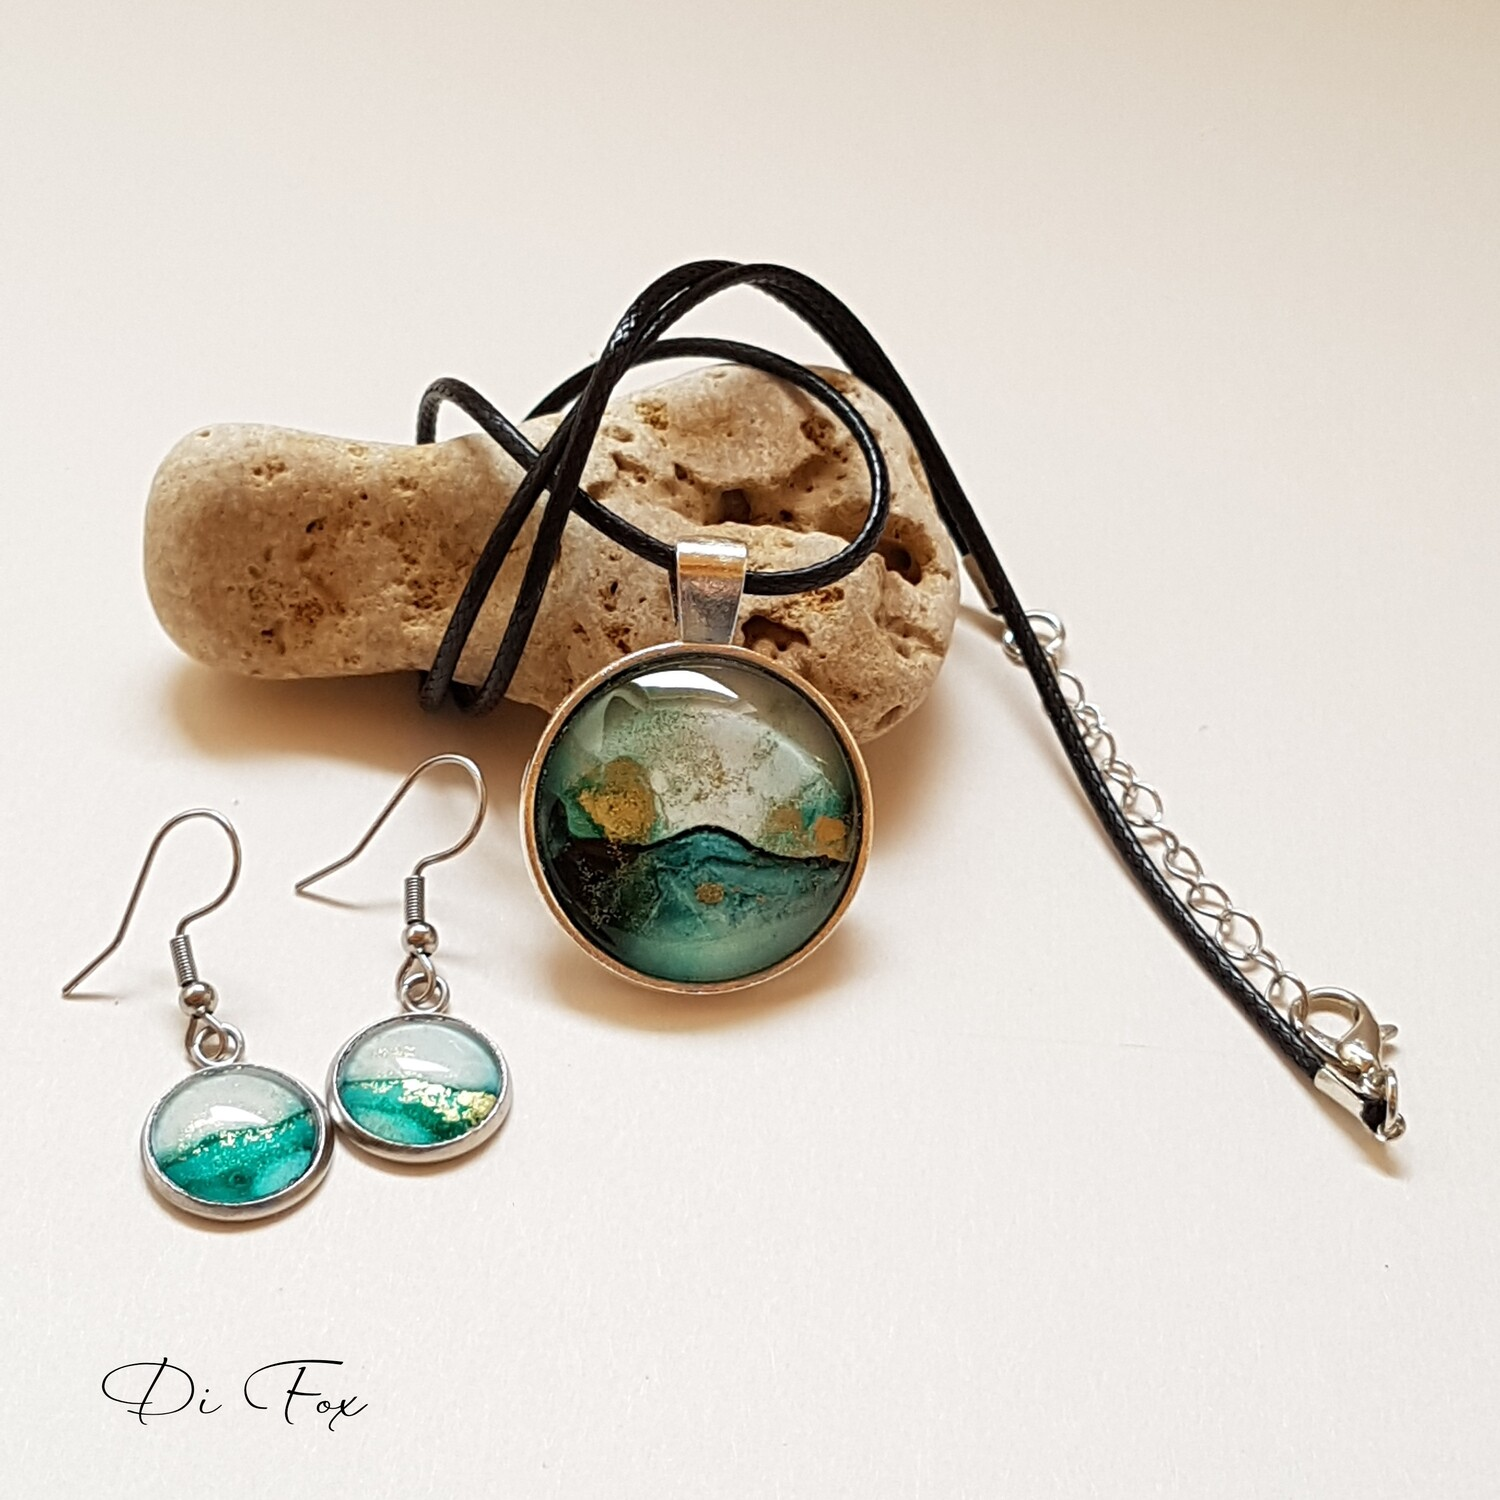 Teal and Gold ink necklace and earring set